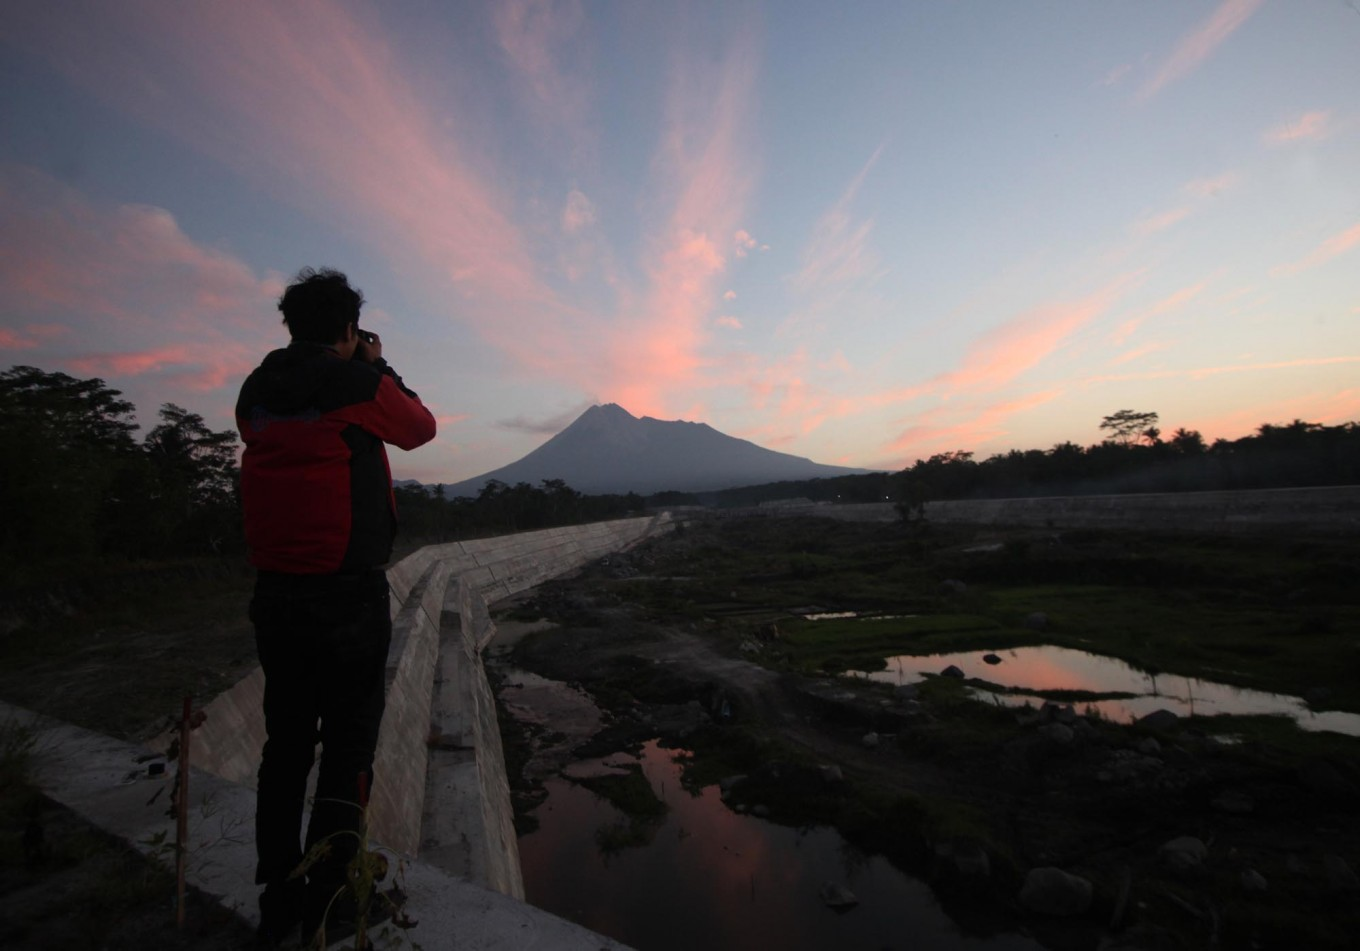 A photographer captures the beautiful scenery of Mount Merapi from Bronggang village in Cangkringan district, Sleman regency, Yogyakarta, on June 2, 2018. JP/Boy T. Harjanto